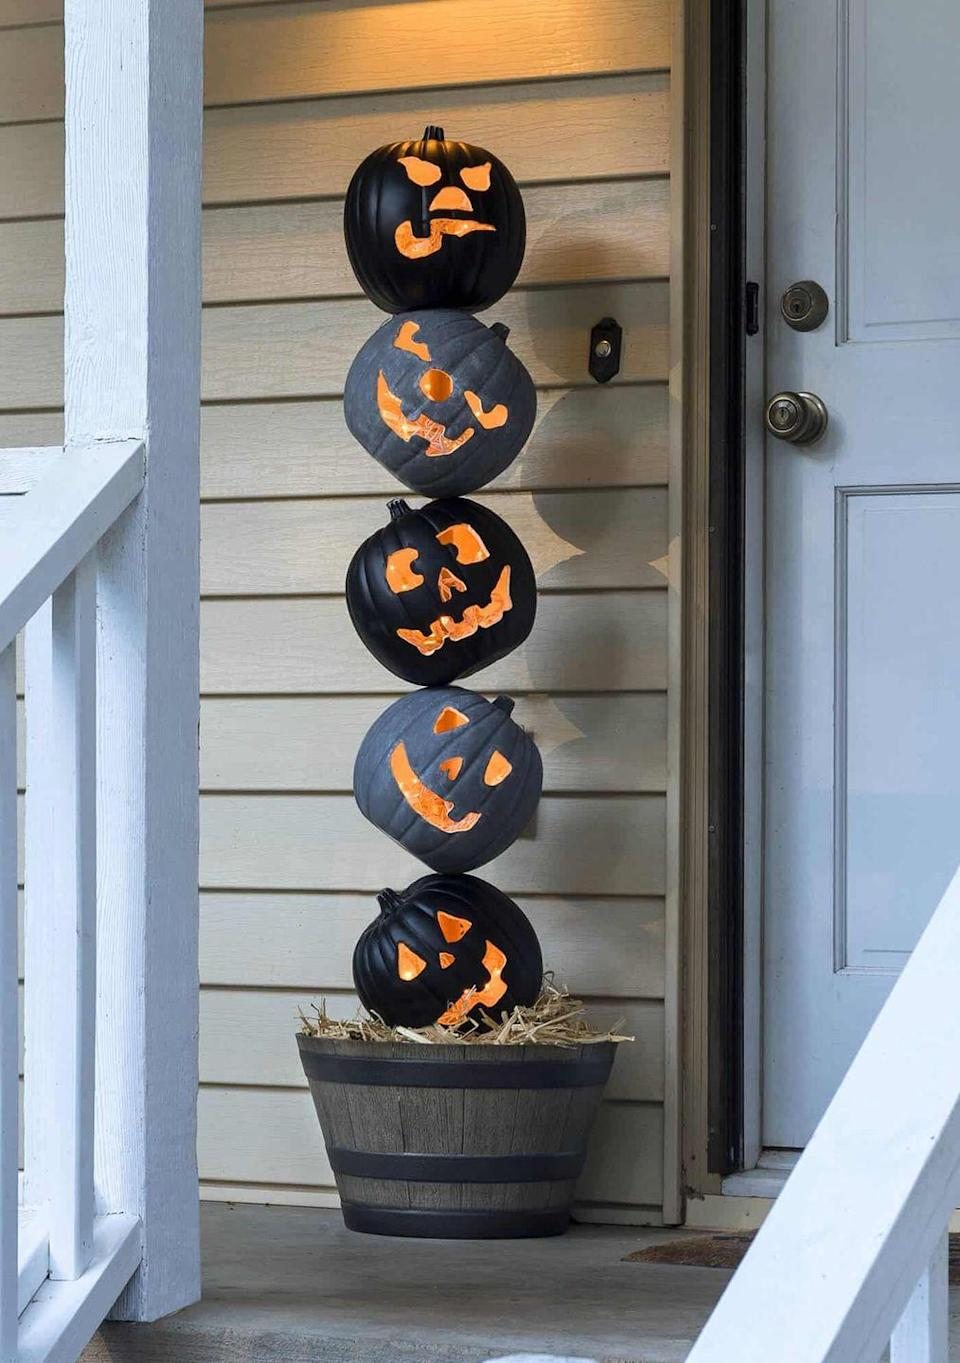 "<p>Stack craft pumpkins on top of each other and fill with twinkle lights for an unexpected, but seriously fun, topiary.</p><p>Get the tutorial at <a href=""https://diycandy.com/lighted-halloween-pumpkin-topiary/"" rel=""nofollow noopener"" target=""_blank"" data-ylk=""slk:DIY Candy"" class=""link rapid-noclick-resp"">DIY Candy</a>.</p>"